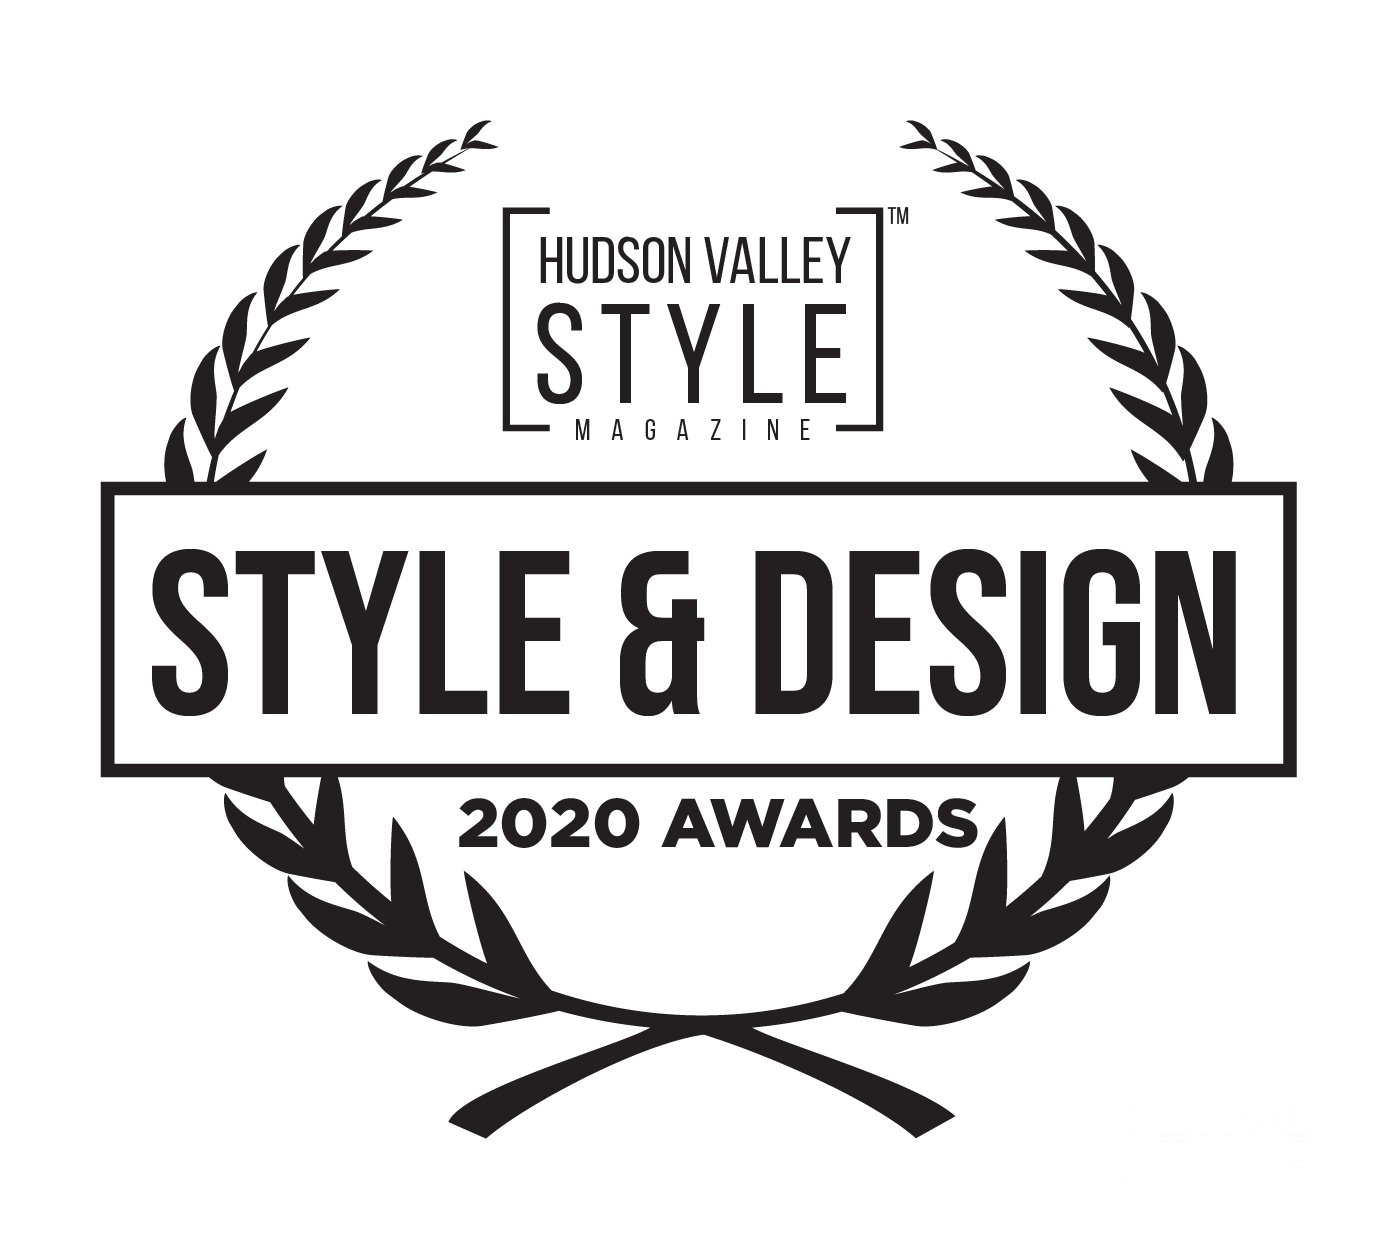 Hudson Valley Style Magazine 2020 Awards: Recognizing Outstanding Style, Design, Creativity, Innovation and Leadership Achievements while advancing Sustainable Design and Social Responsibility Principles in the Greater Hudson Valley Region and all around the World.